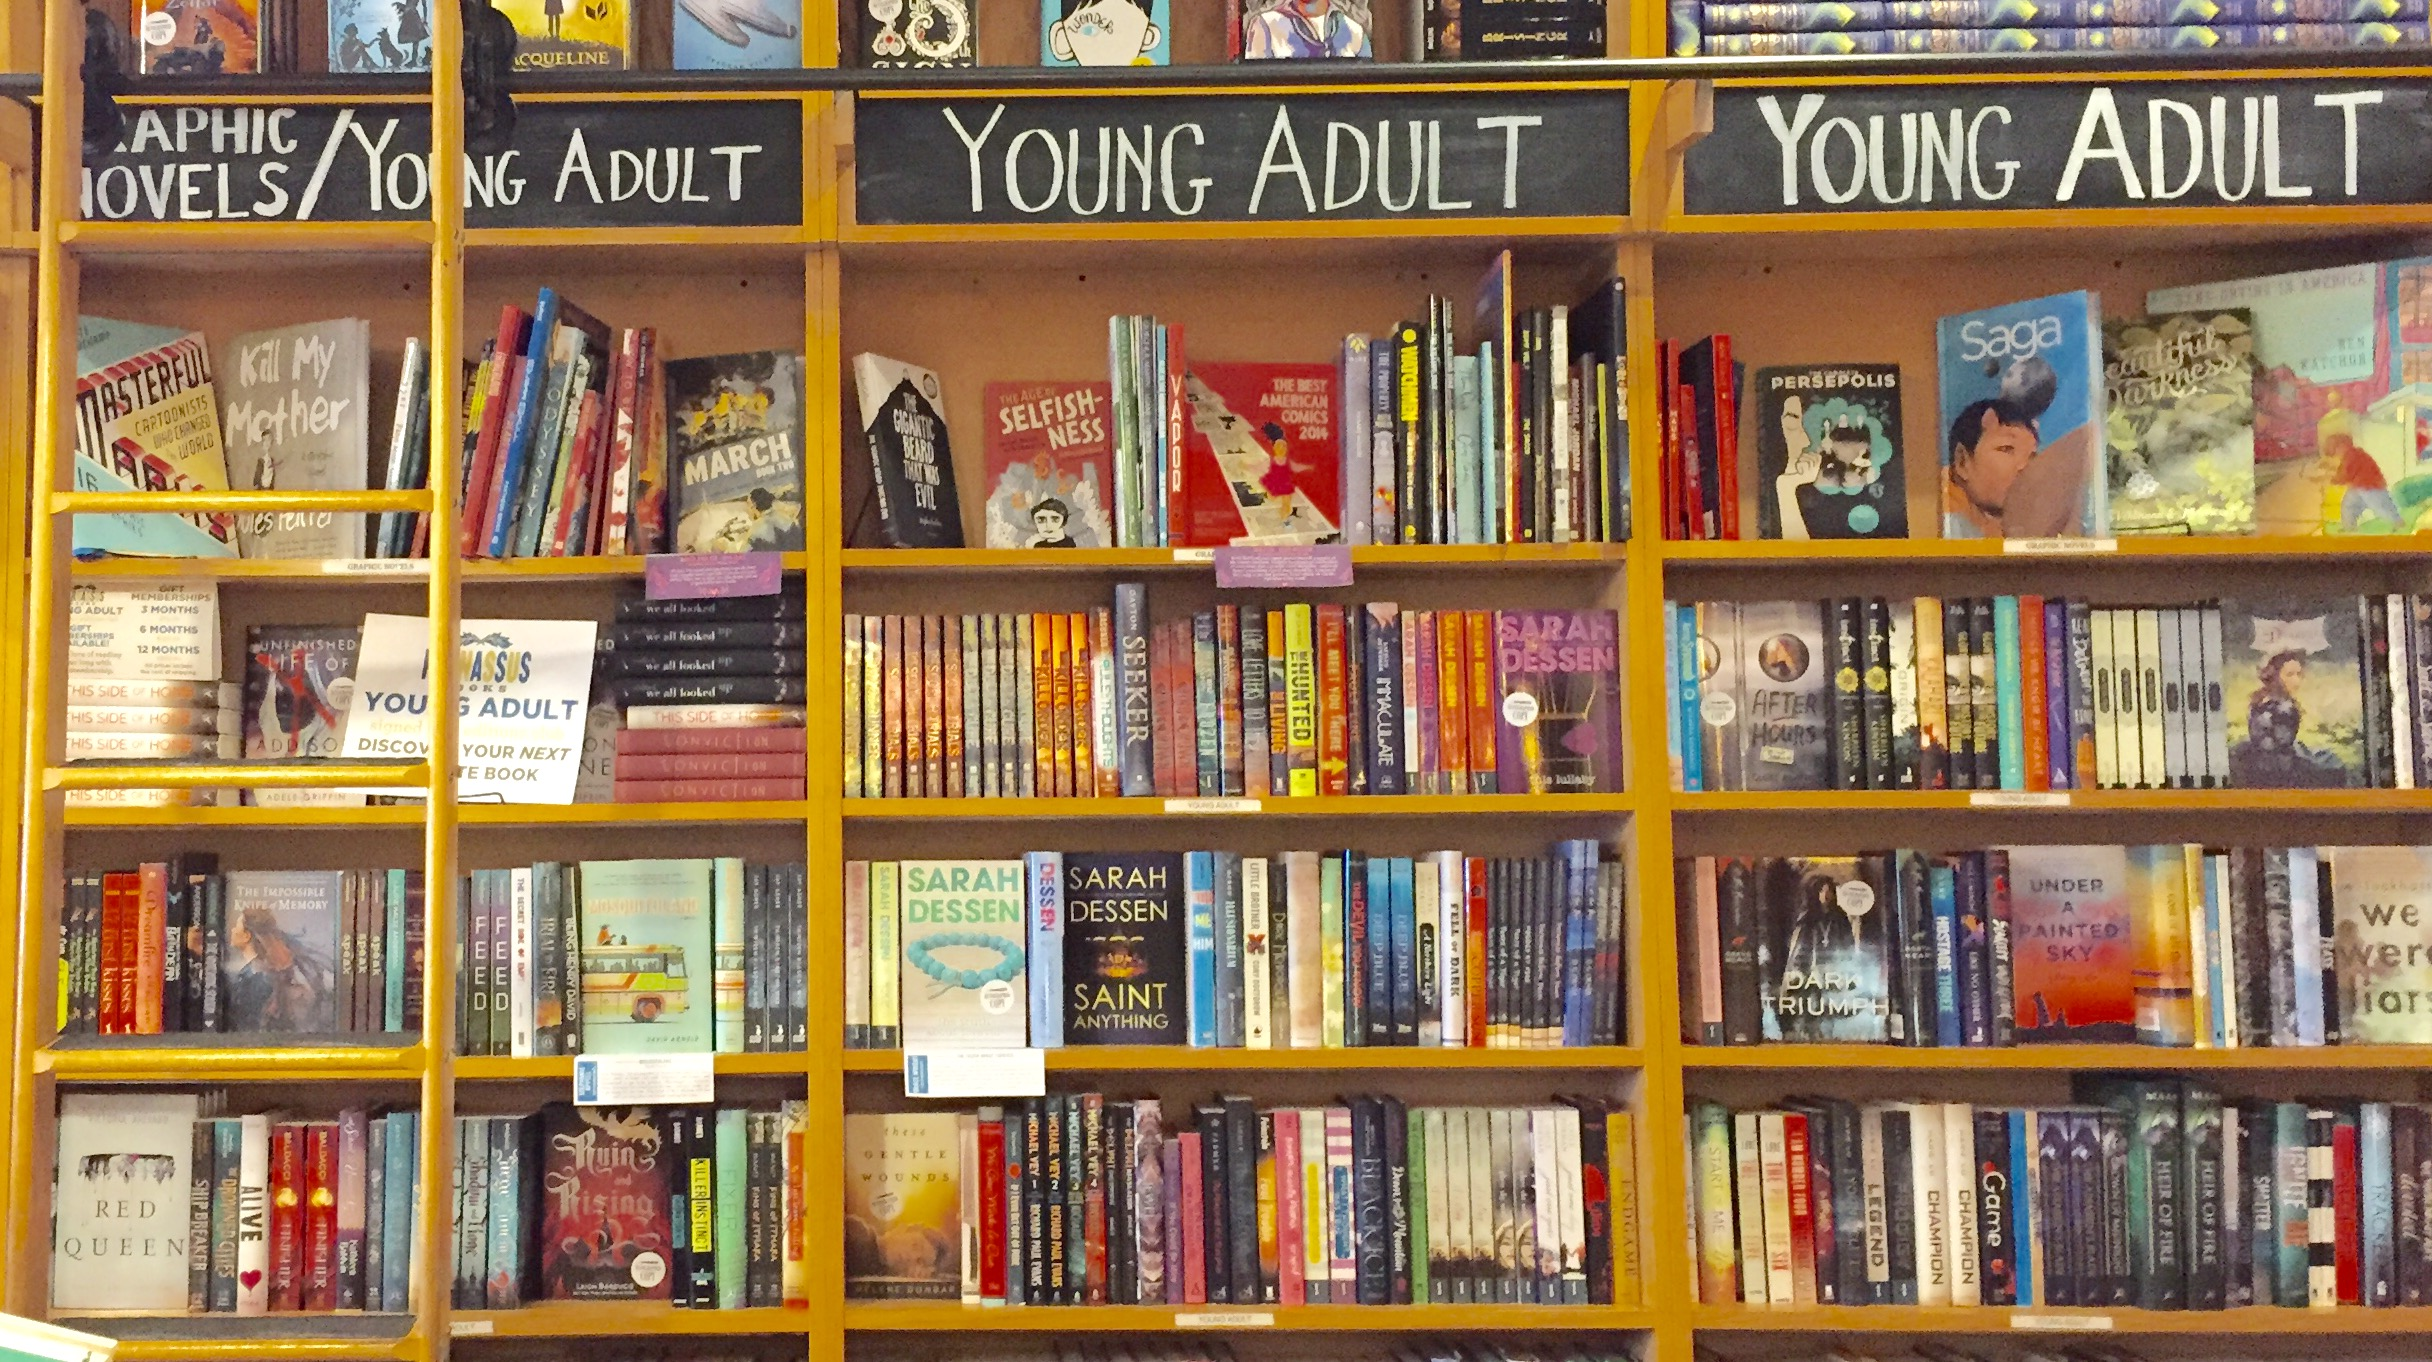 Can Popular young adult fiction books remarkable topic